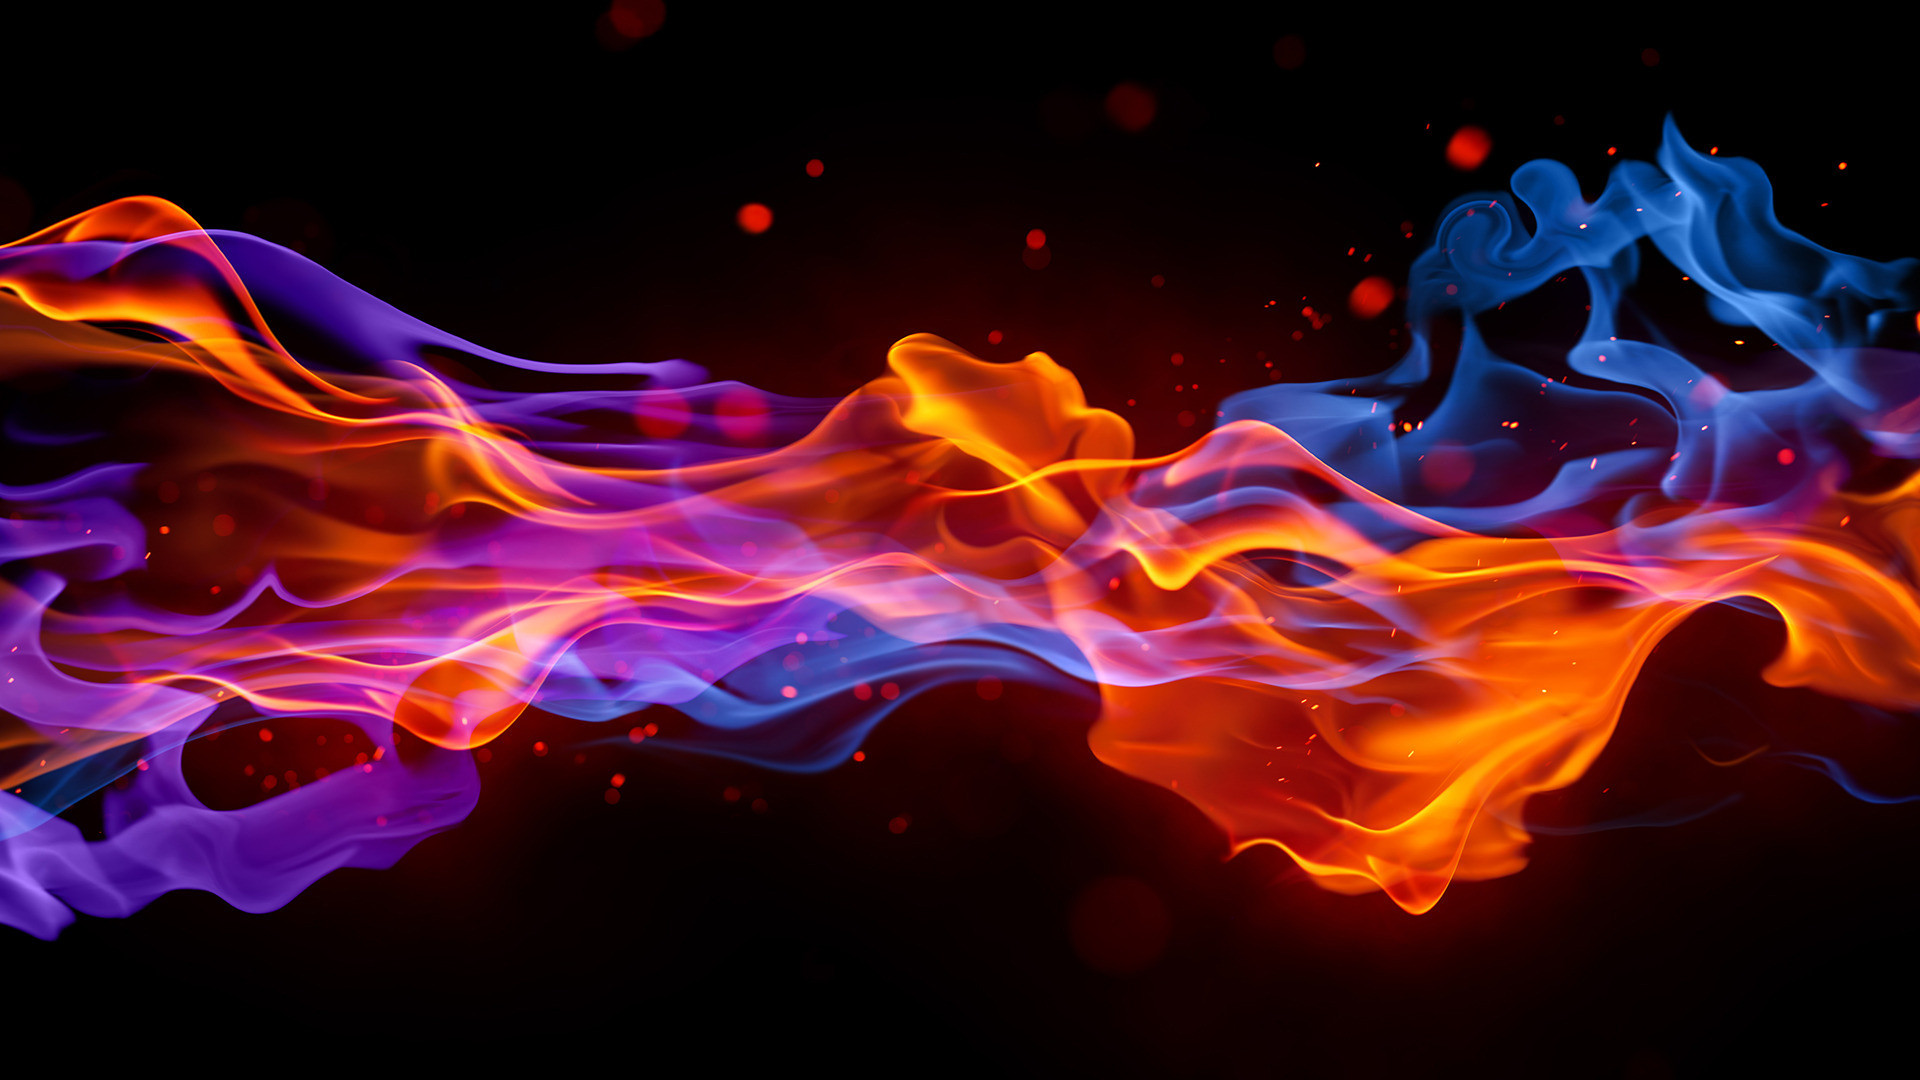 1920x1080 - Red and Blue Fire 18